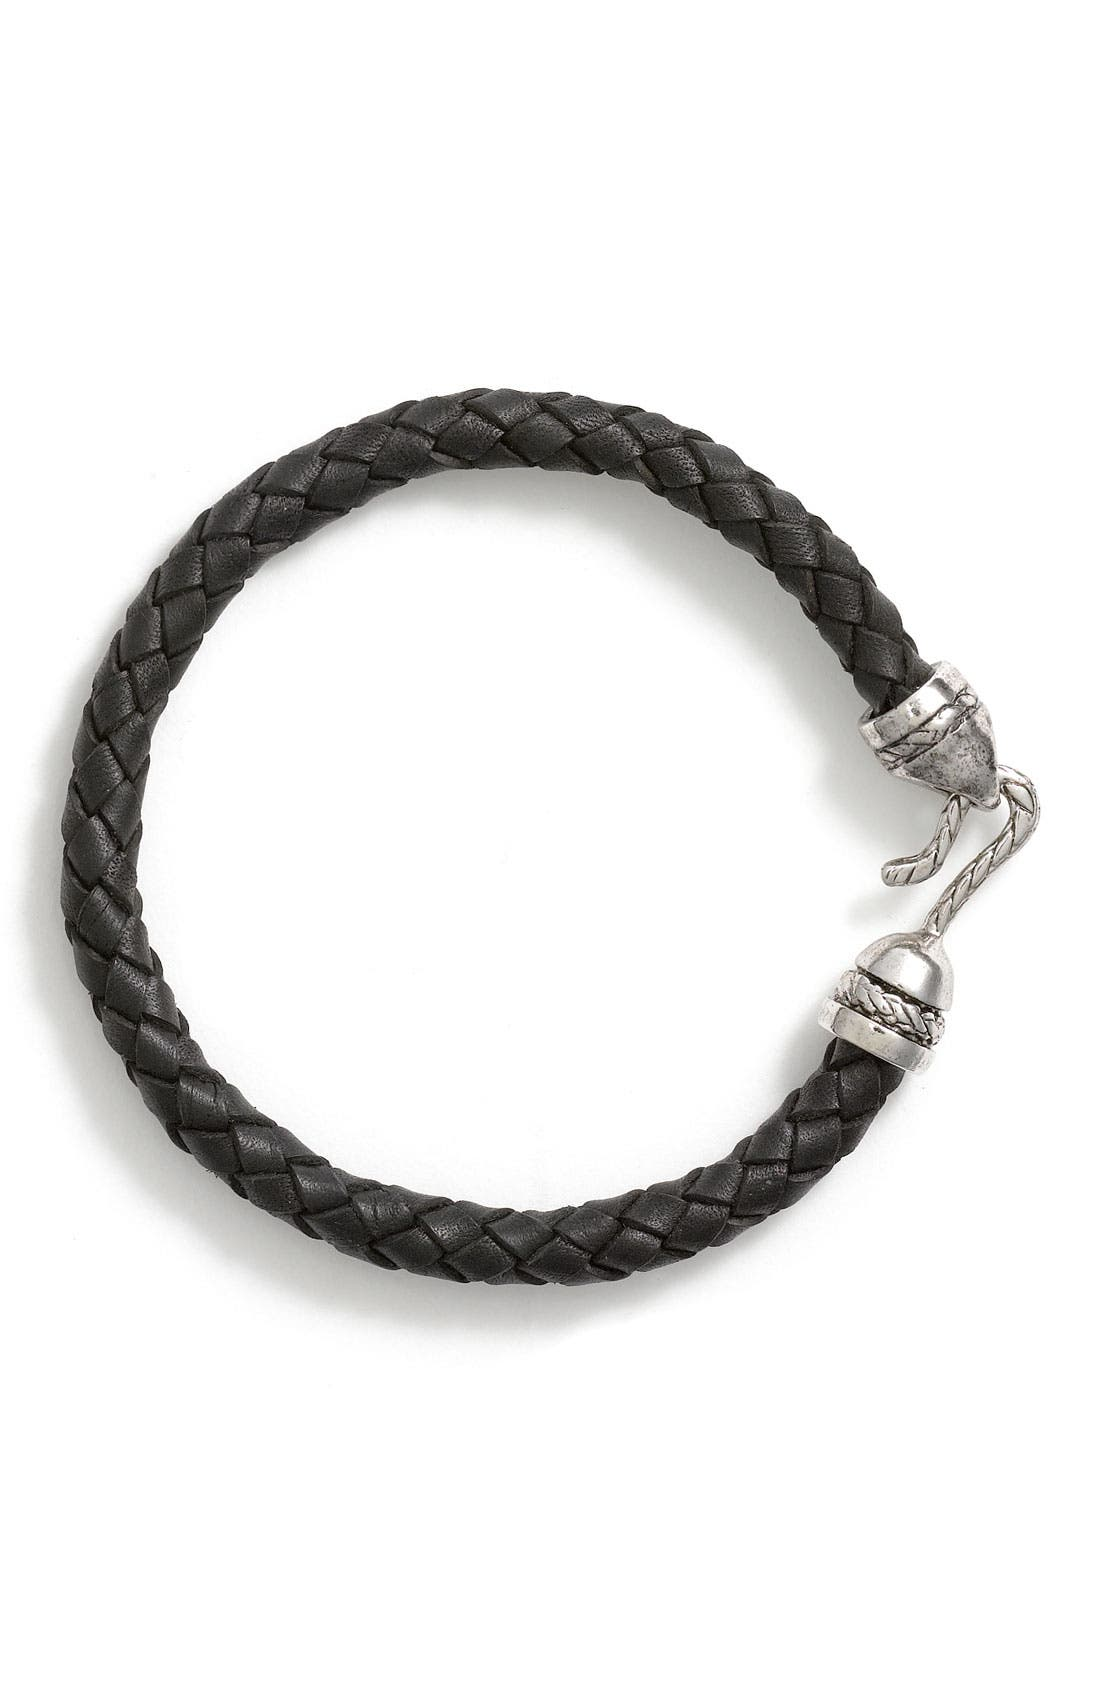 Alternate Image 1 Selected - Zack 'Narrow' Braided Bracelet